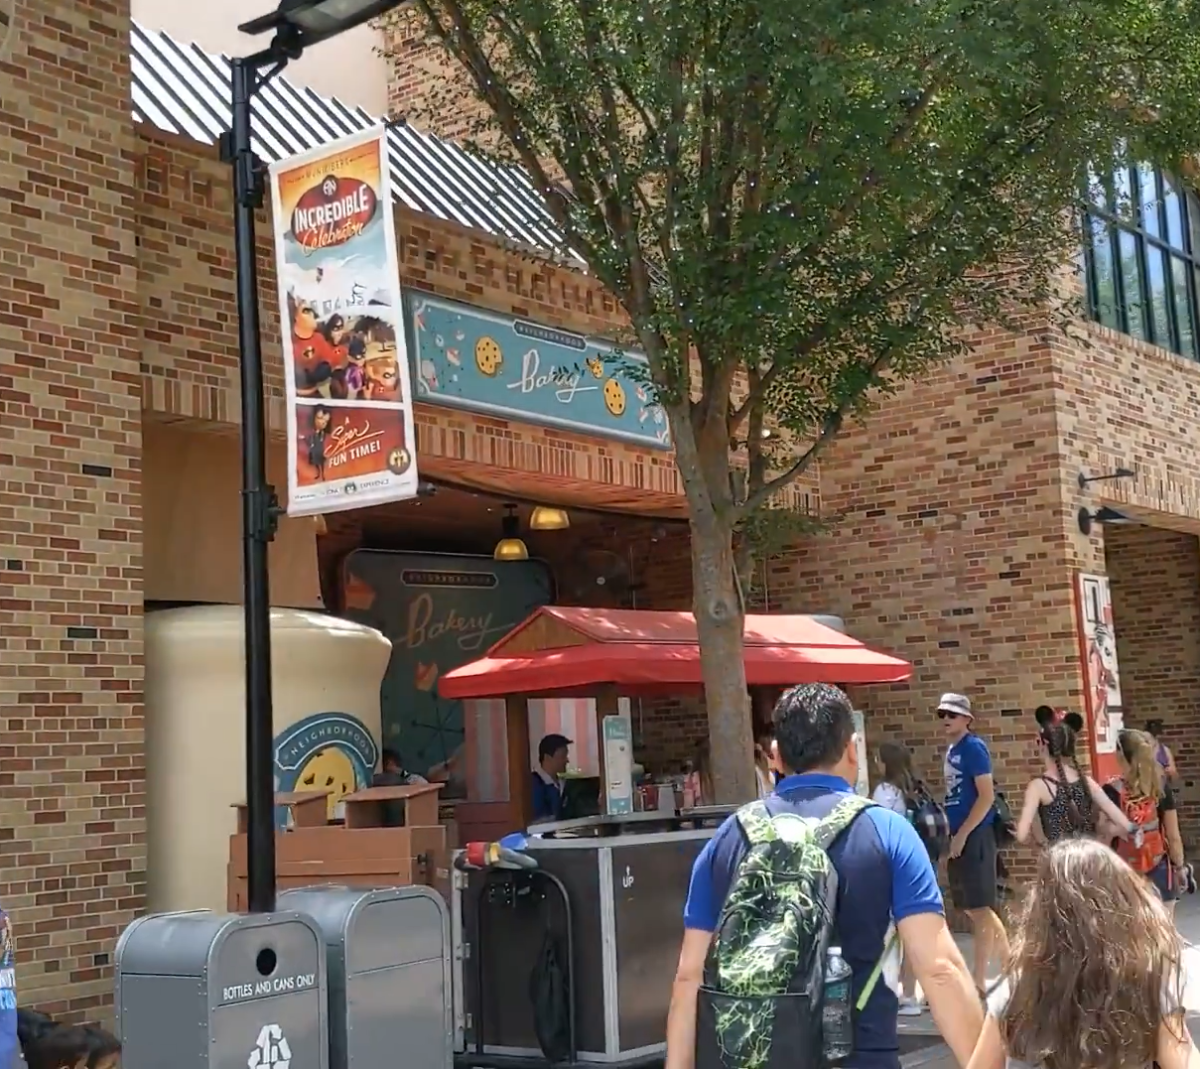 Eat cookies at the market that sells food in Hollywood Studios theme park in Orlando, Florida